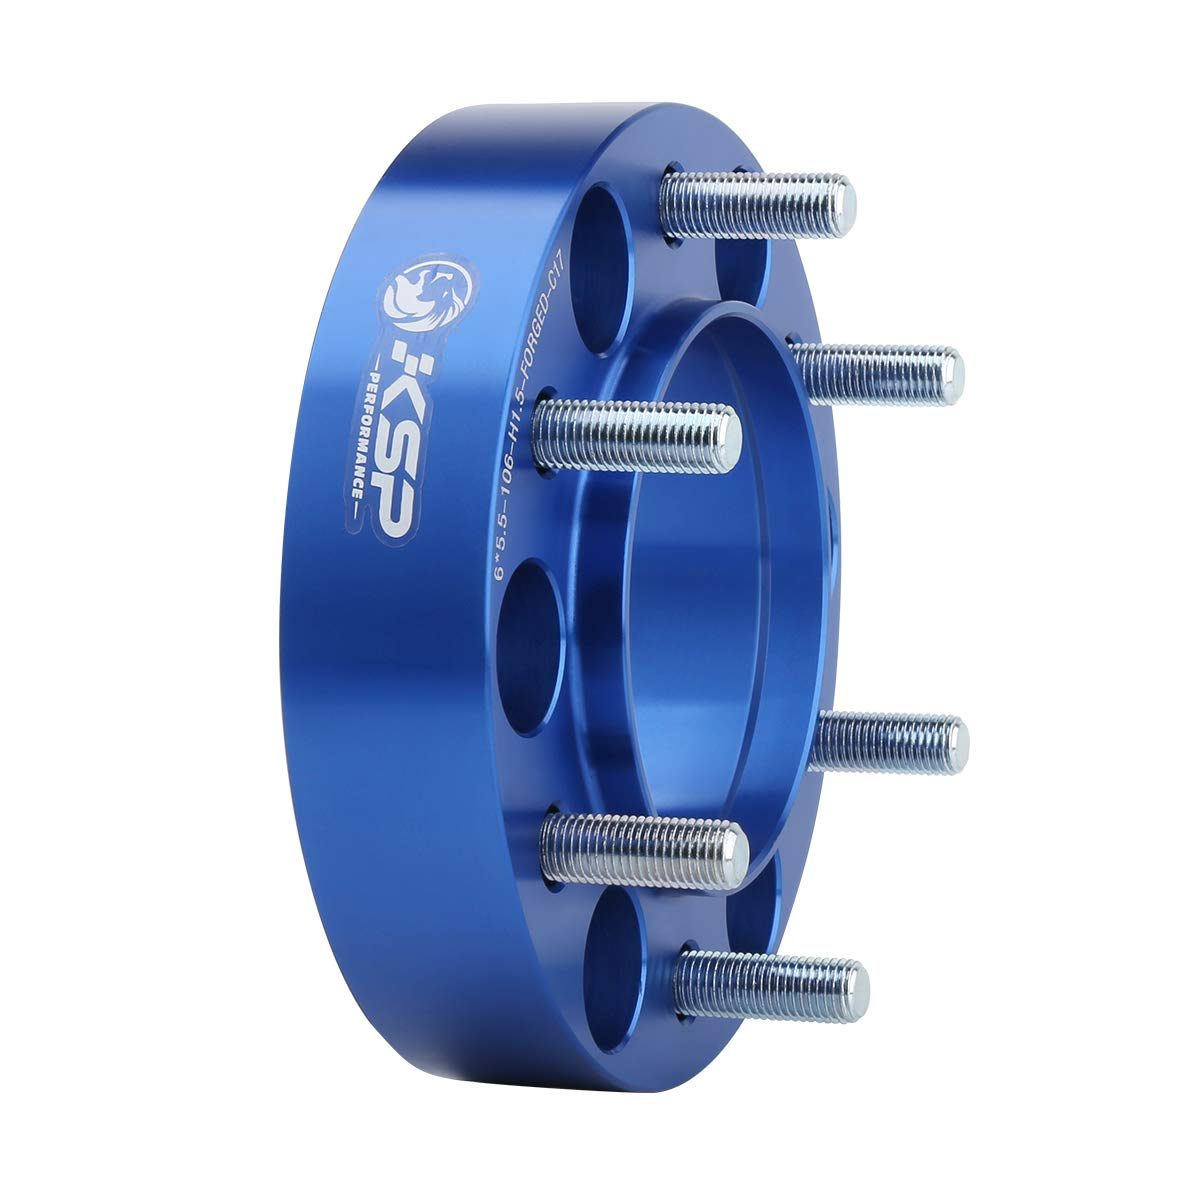 KSP 6X5.5 Wheel Spacers Fit for Tacoma 4runner B07DLX519N 1.5 inches Forged Hub Centric Adapters Kits fit 6 Lug Wheel 2 Years Warranty Package of 4